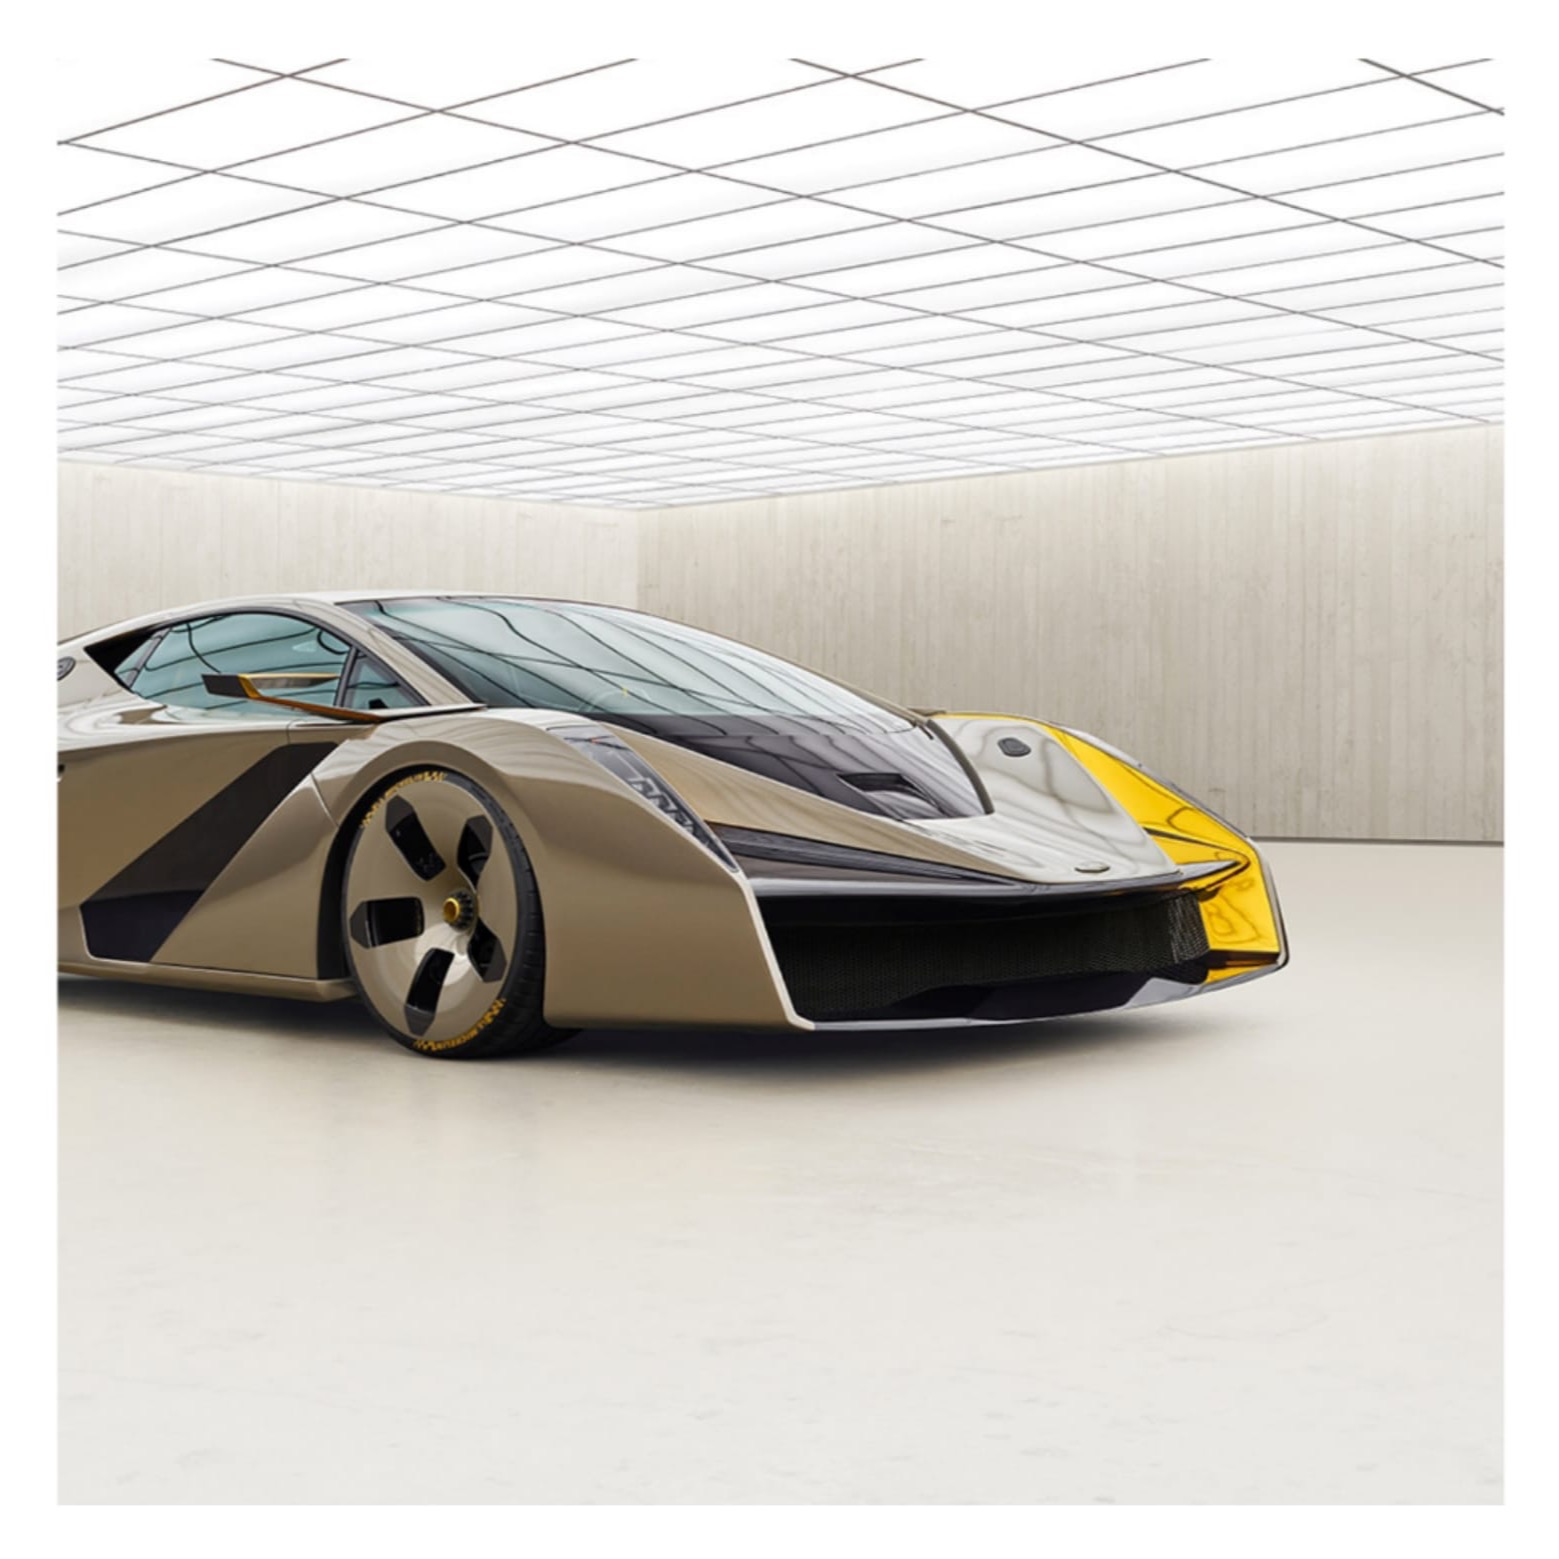 L'automobile Presents: Past, Present and Future Taking Automotive Events To The Next Level!